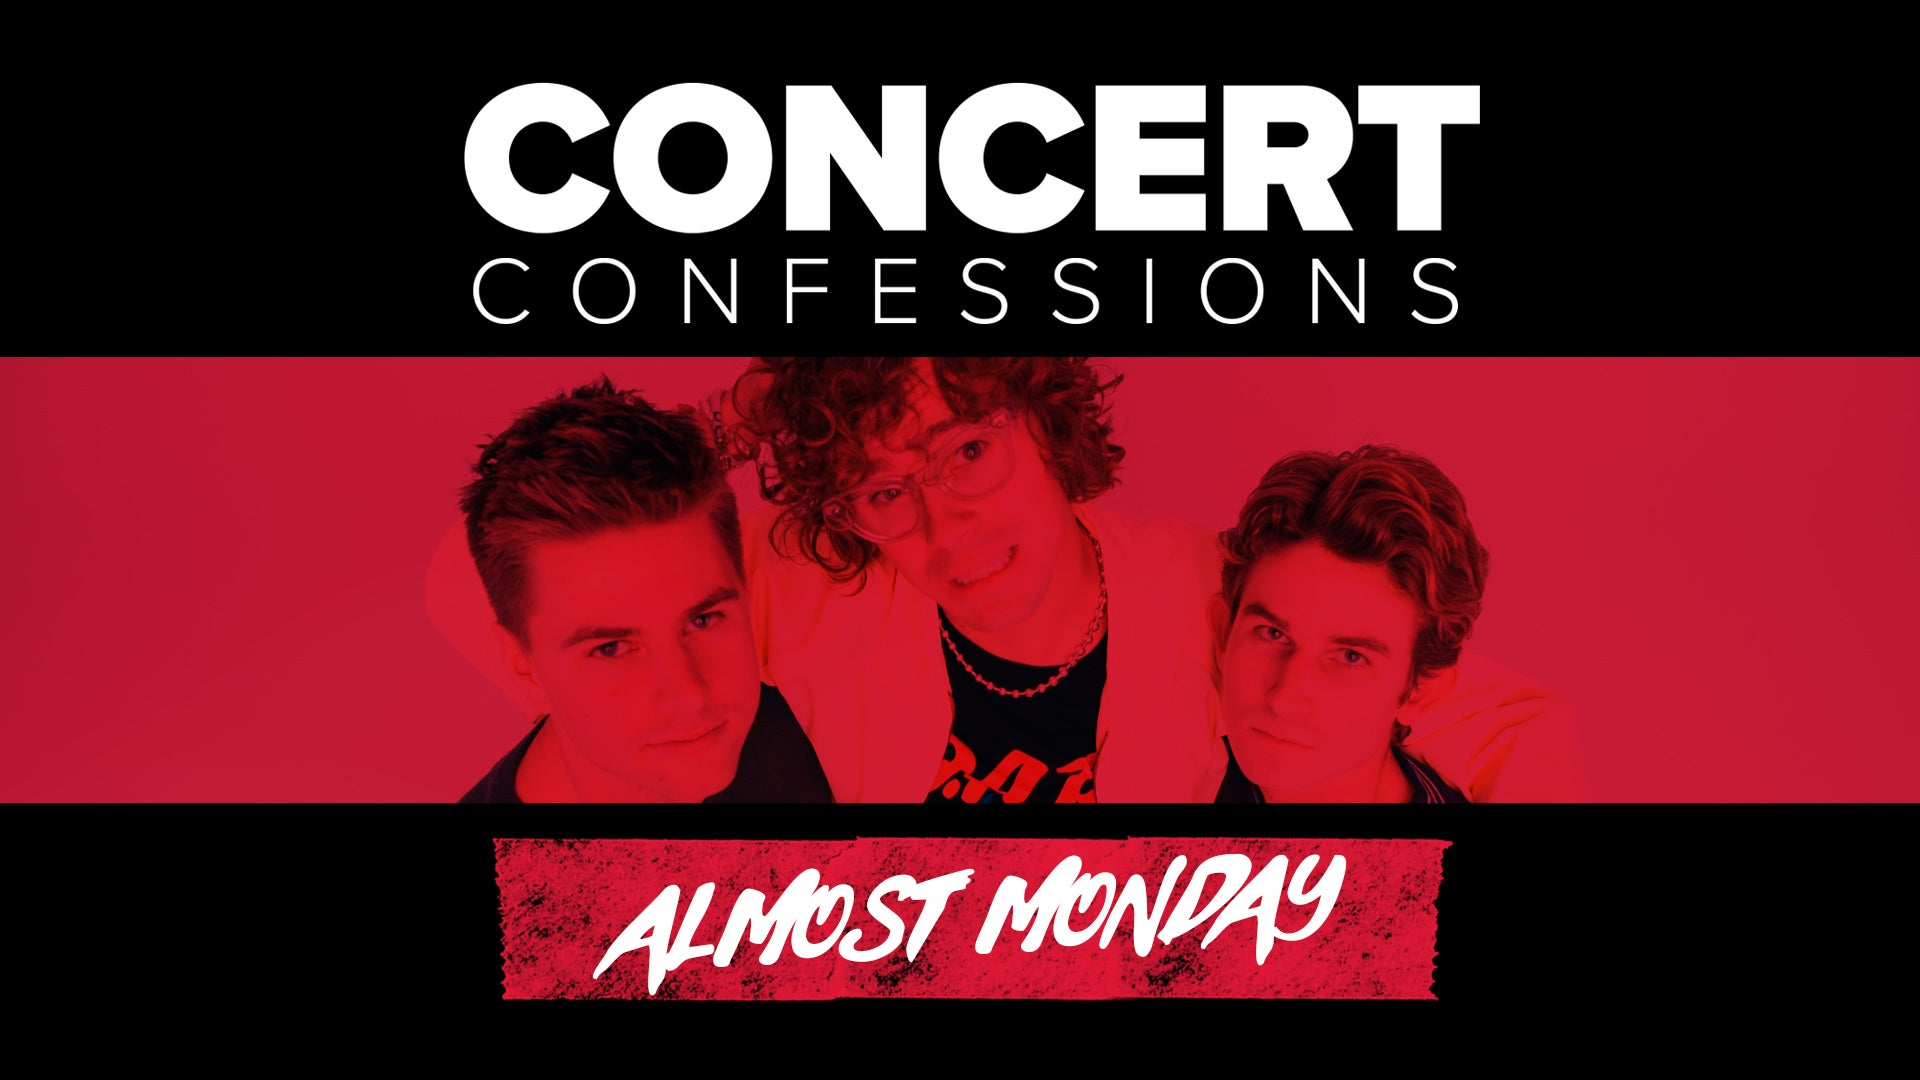 Concert Confessions: Almost Monday